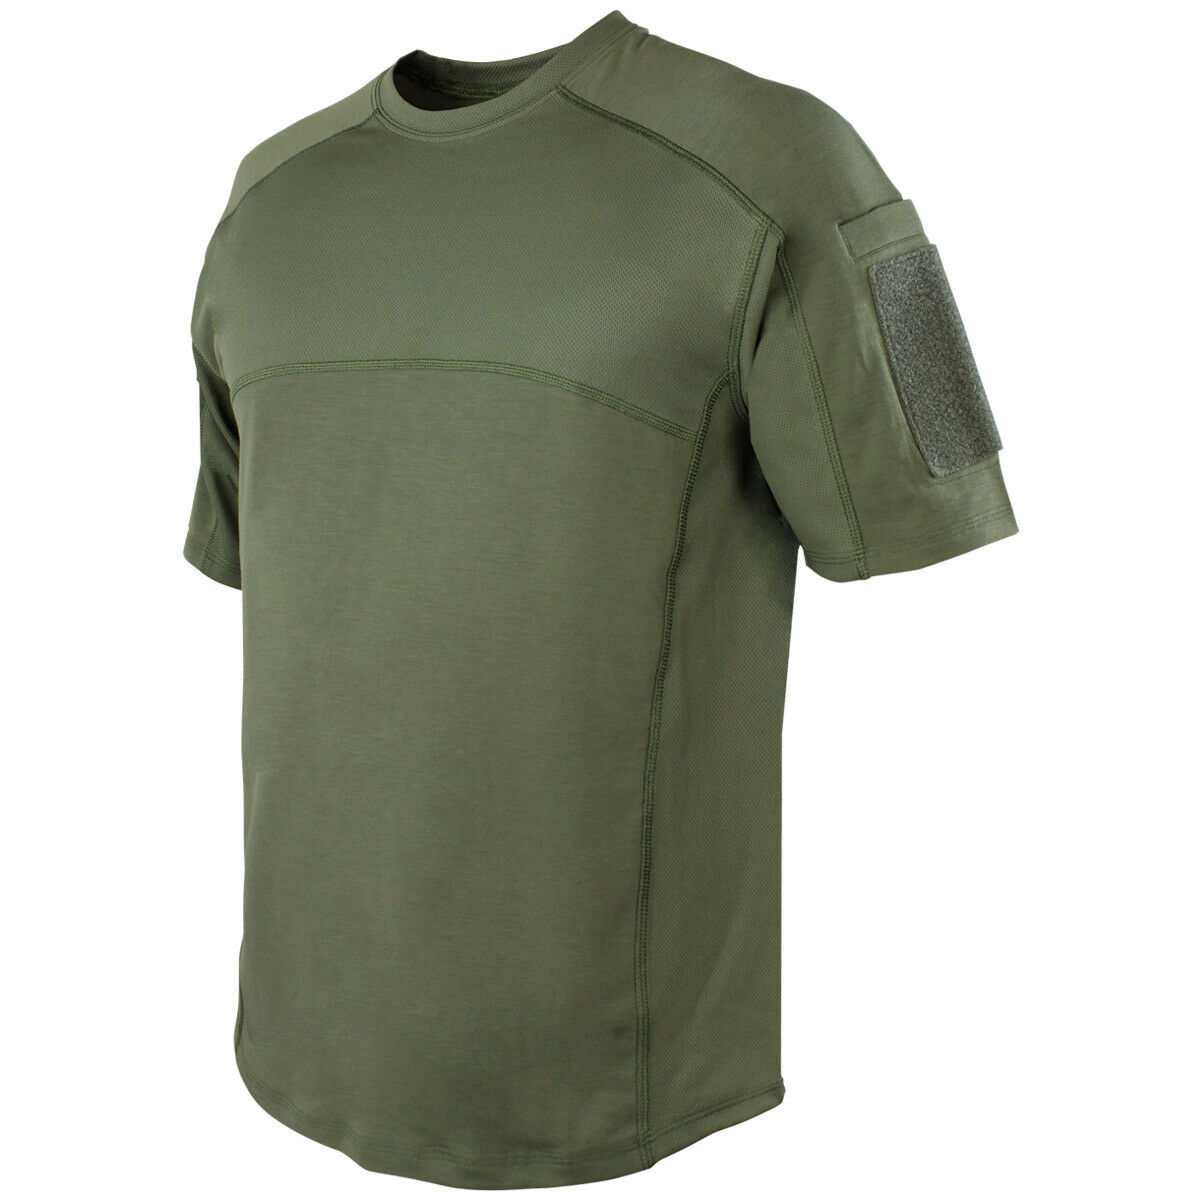 Condor Trident Battle Top Army Tactical Mens Casual T-shirt Summer Olive Drab